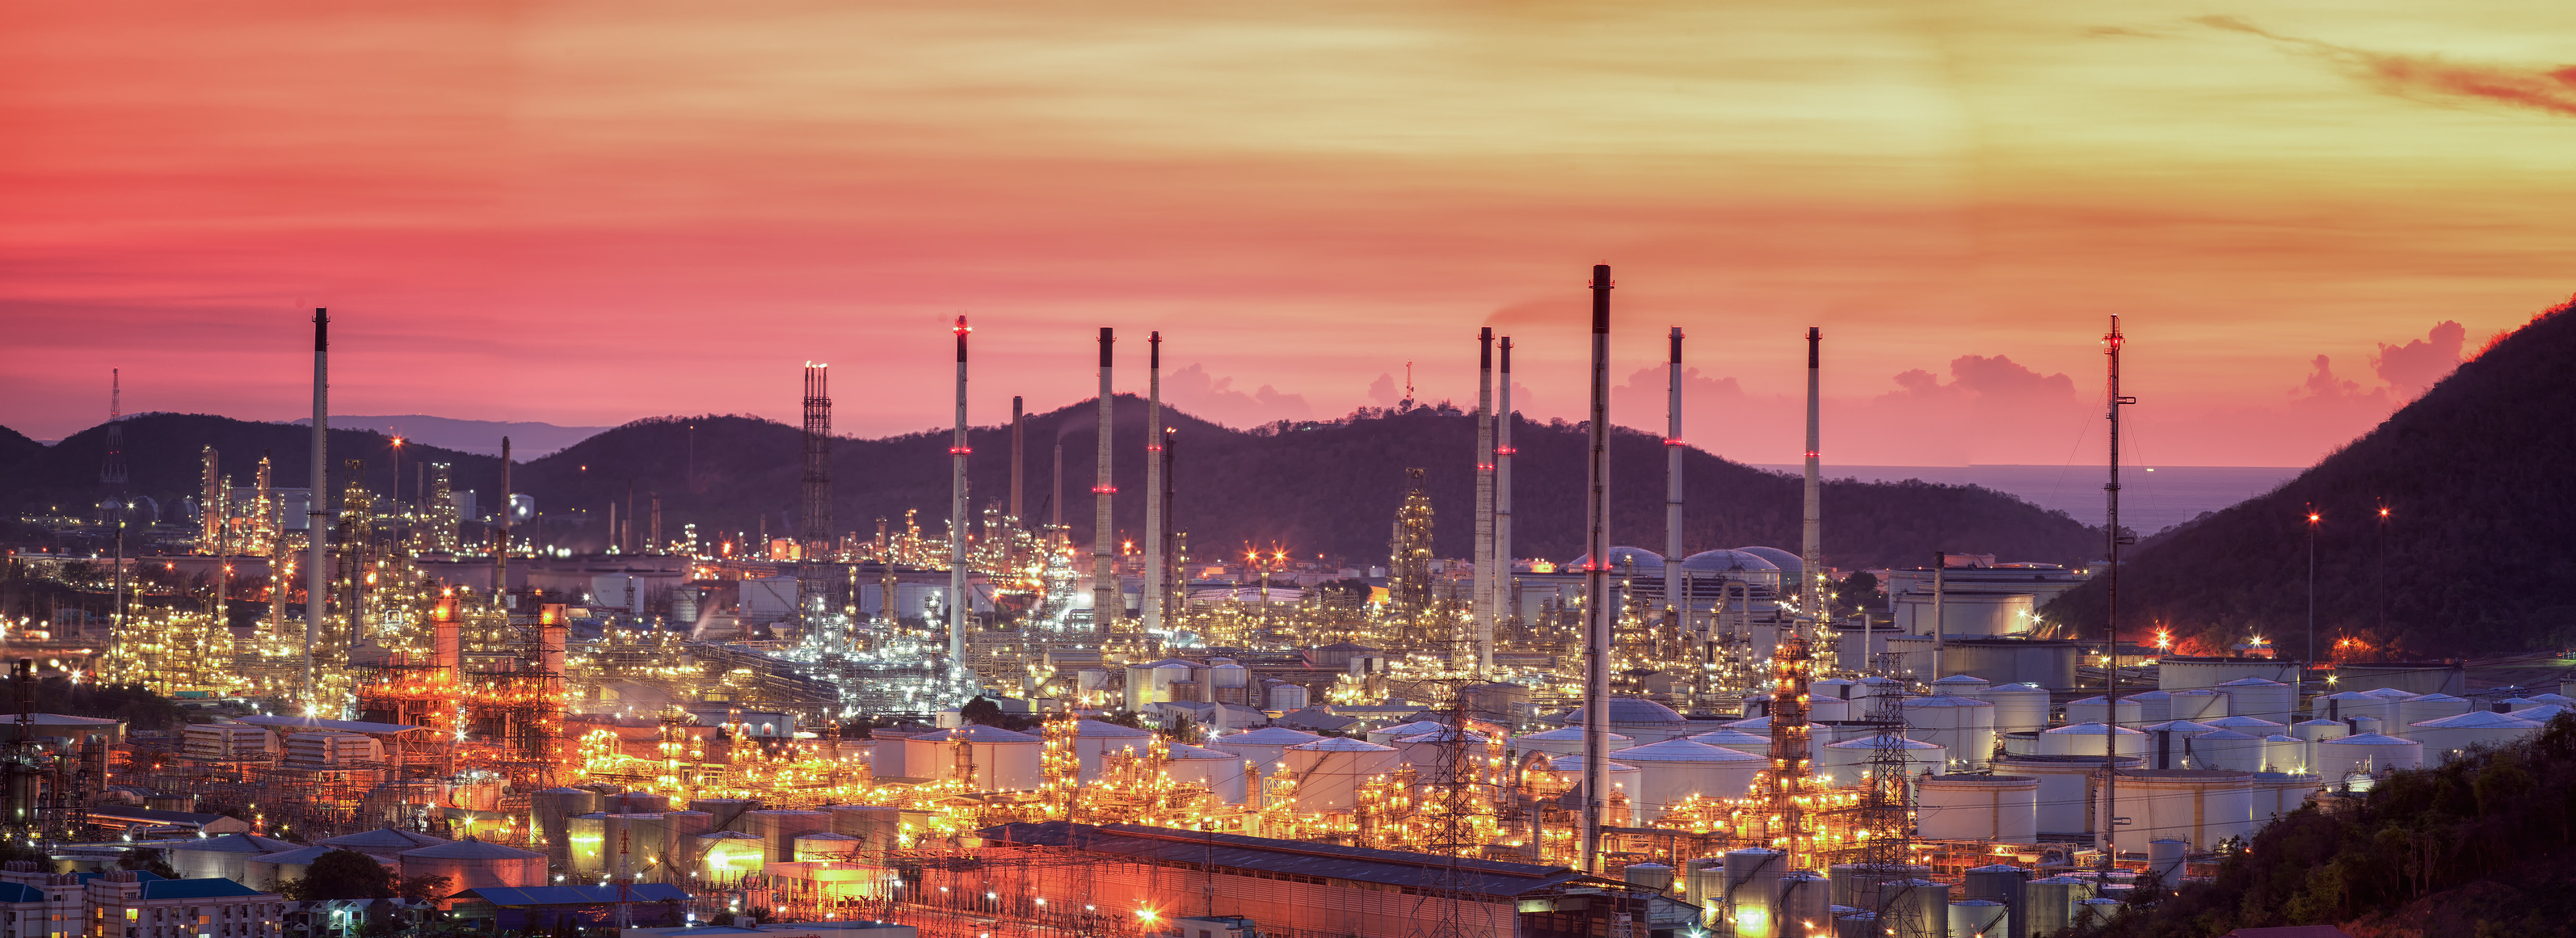 Oil refinery with tube and oil tank along twilight sky